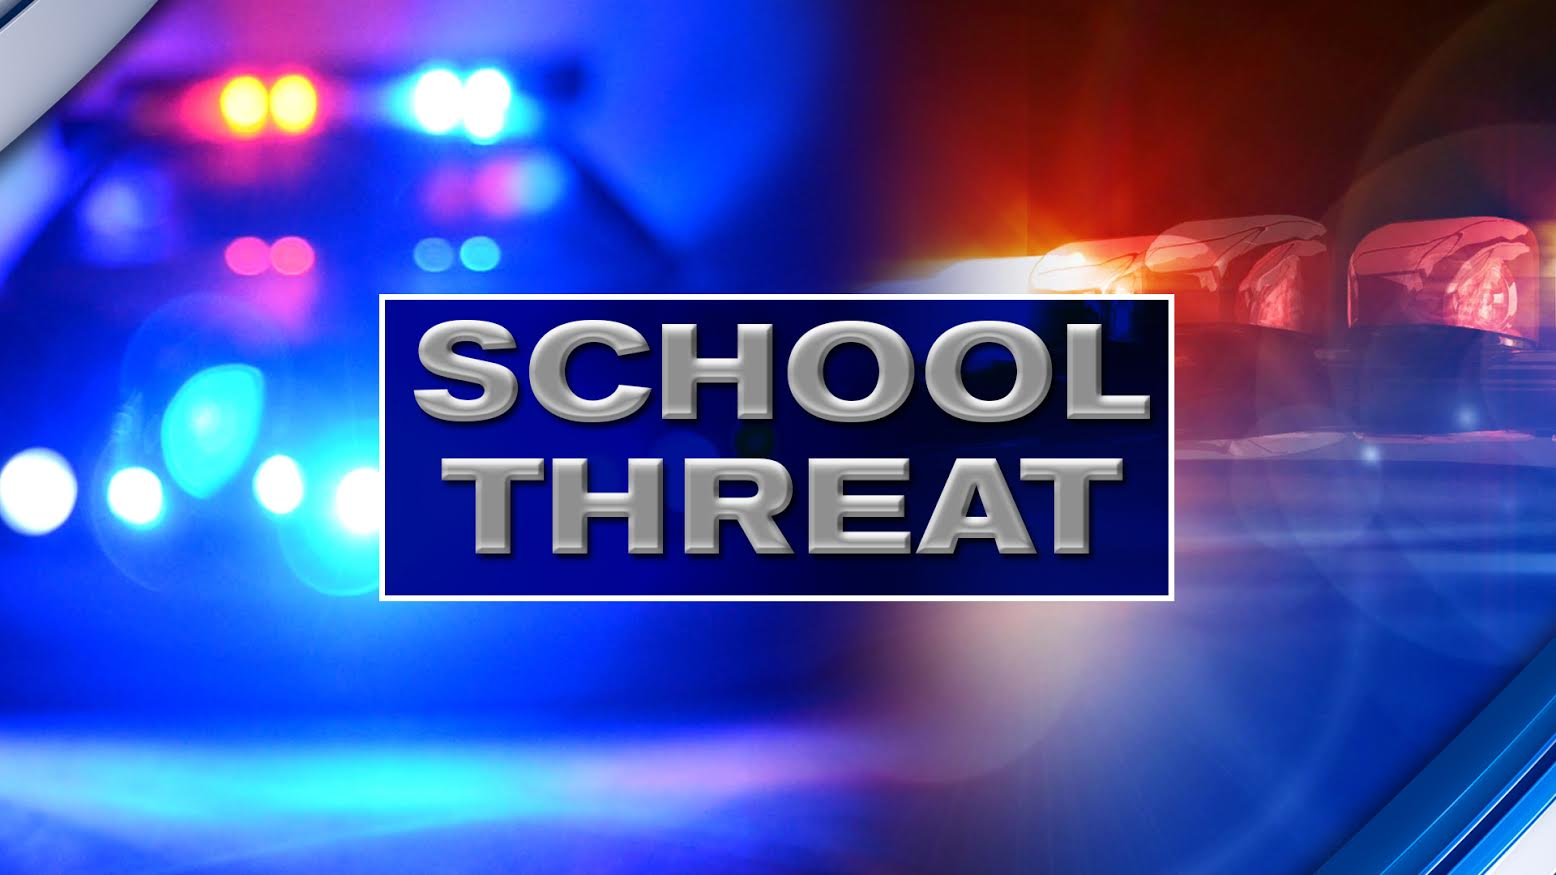 Colorado School District Threat